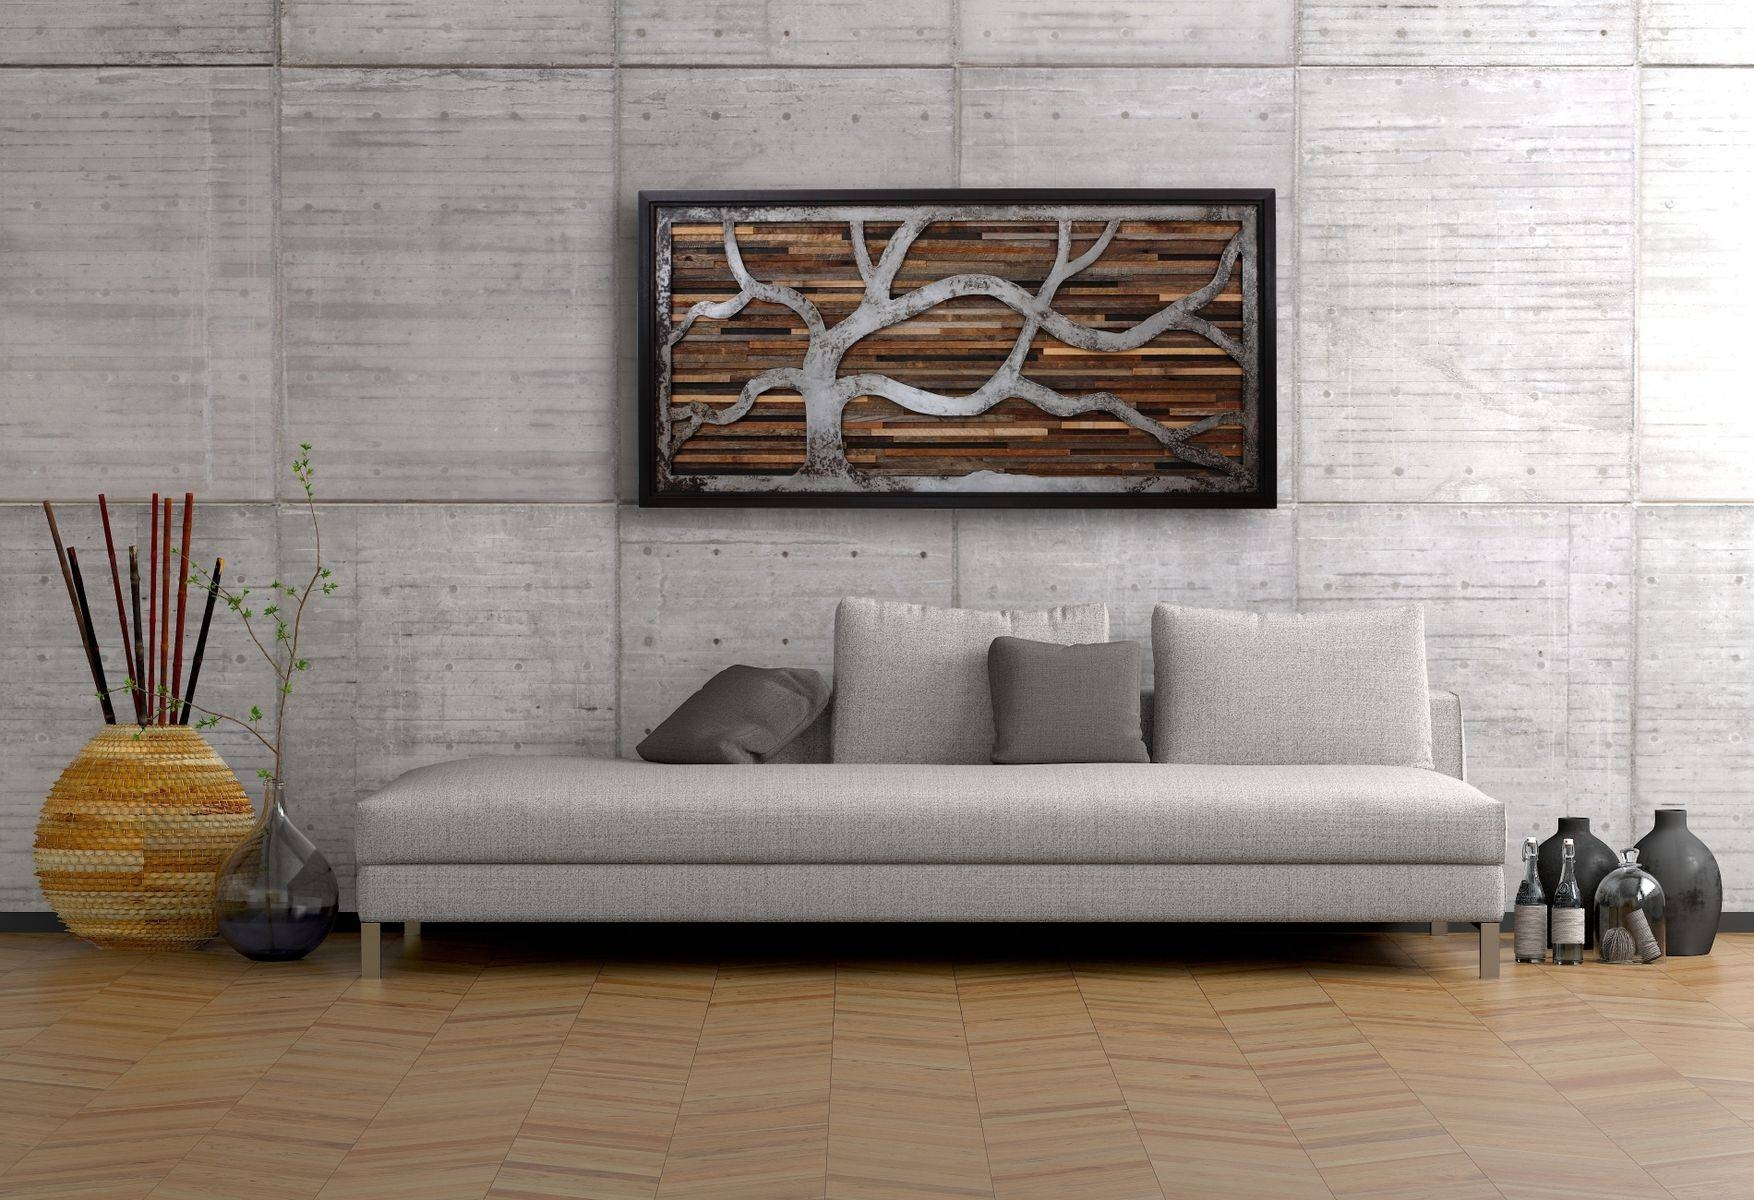 Handmade Reclaimed Wood Wall Art Made Of Old Barnwood And Rustic Inside Best And Newest Wood Wall Art (View 9 of 25)